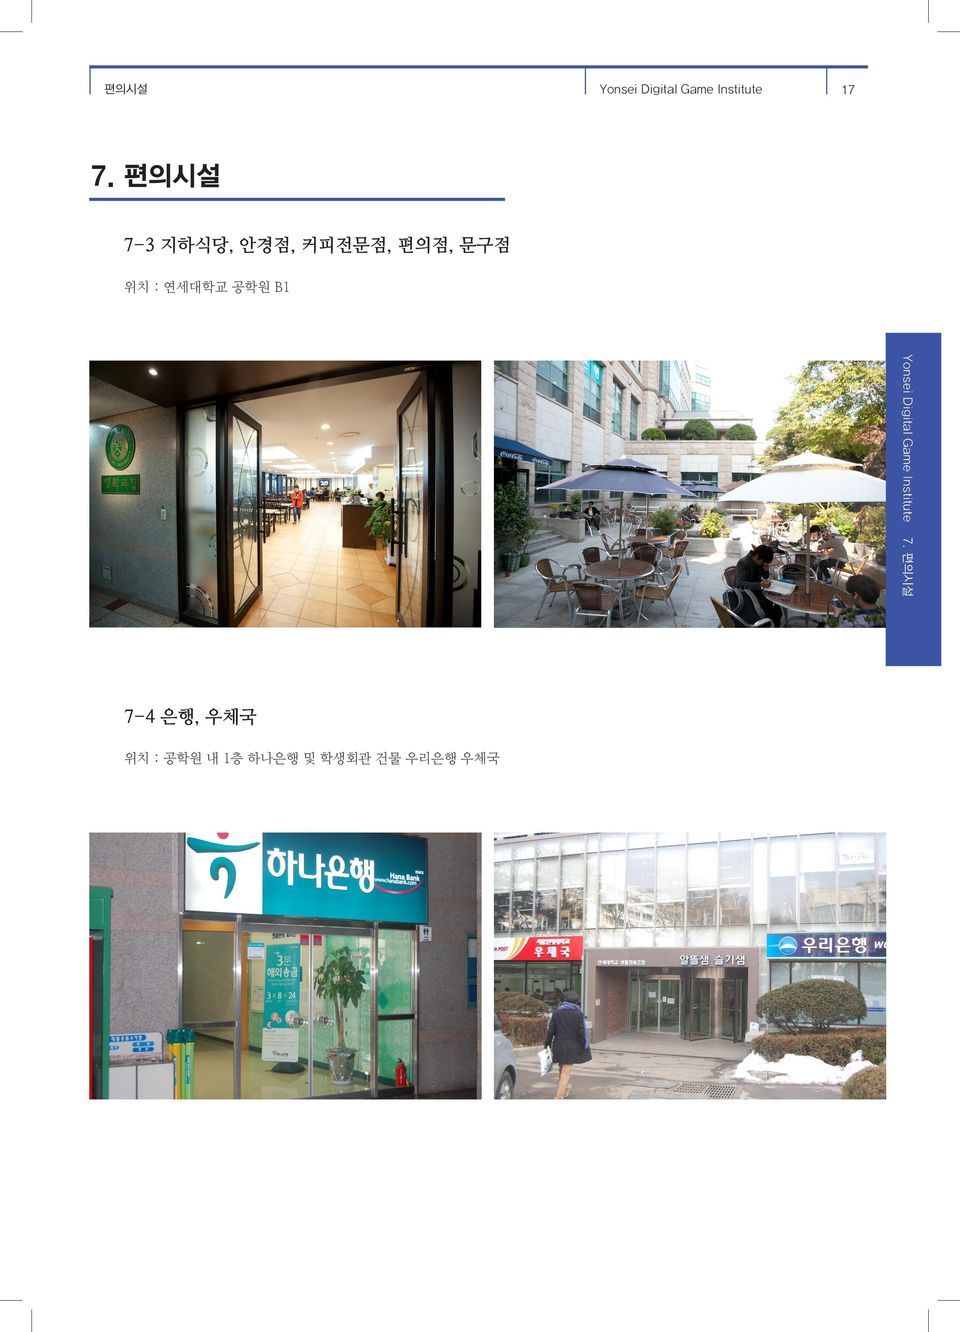 연세대학교 공학원 B1 Yonsei Digital Game Institute 7.